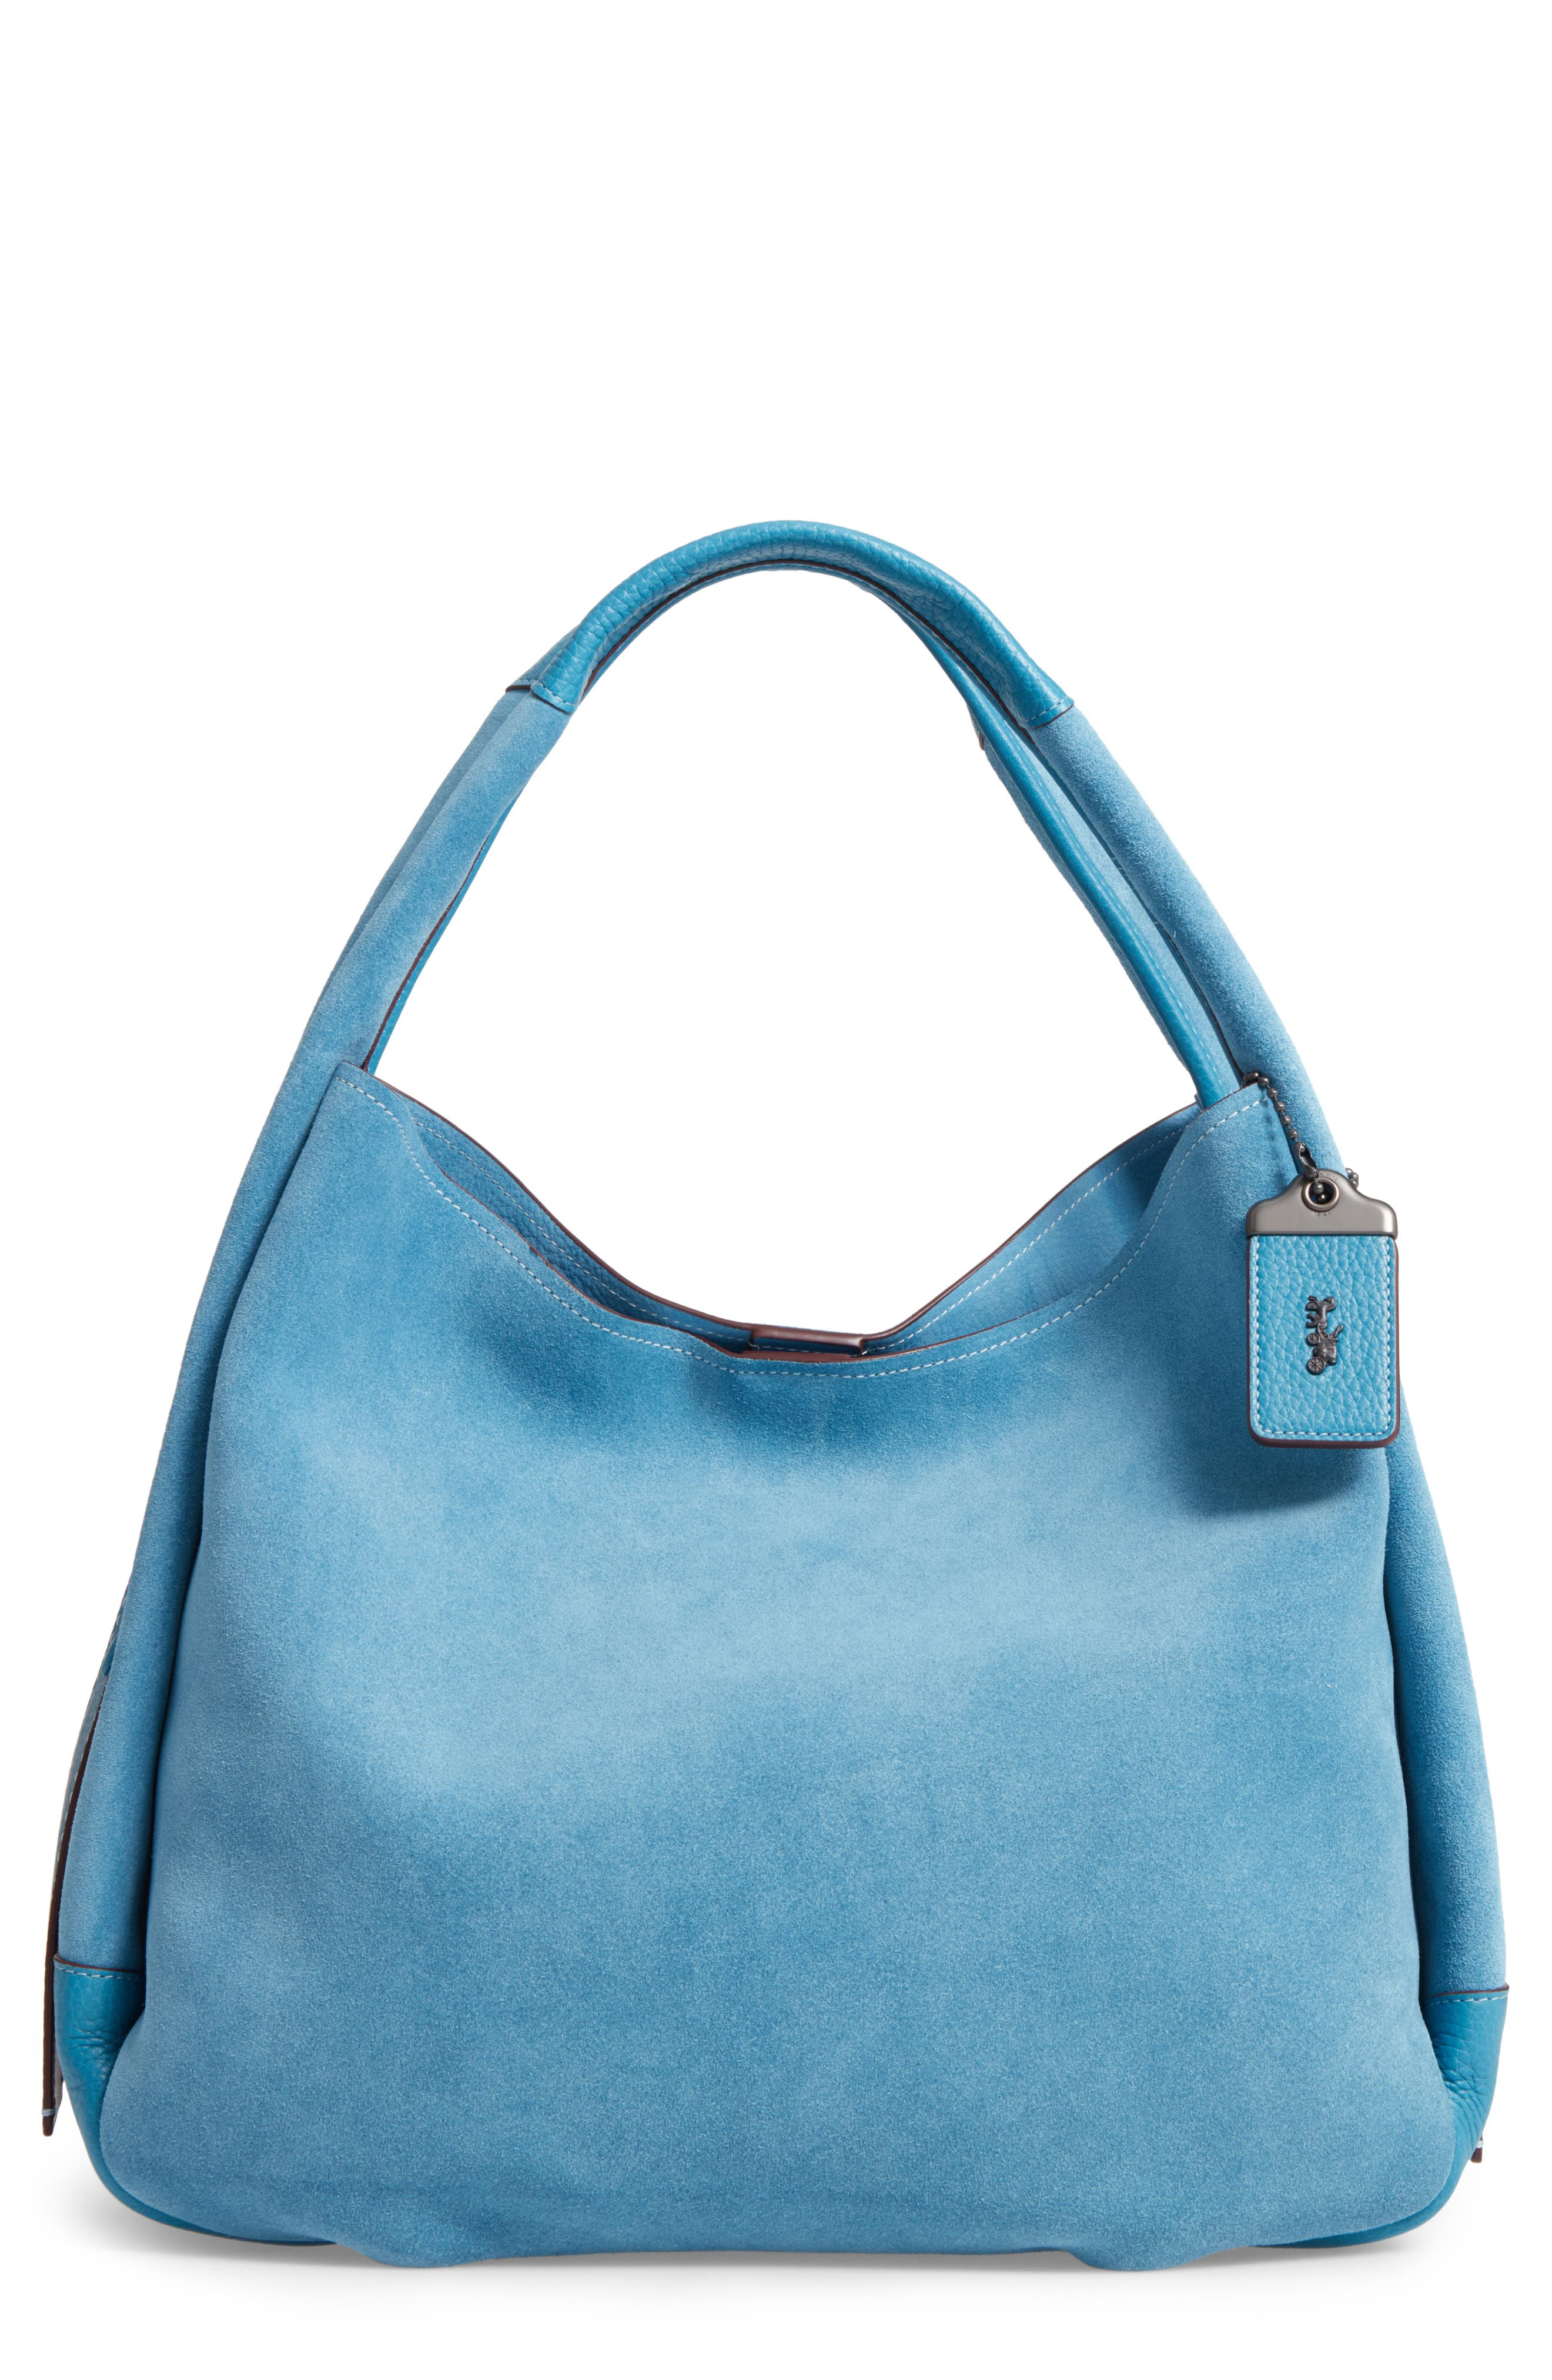 Bandit Suede Hobo & Removable Shoulder Bag,                         Main,                         color, 453